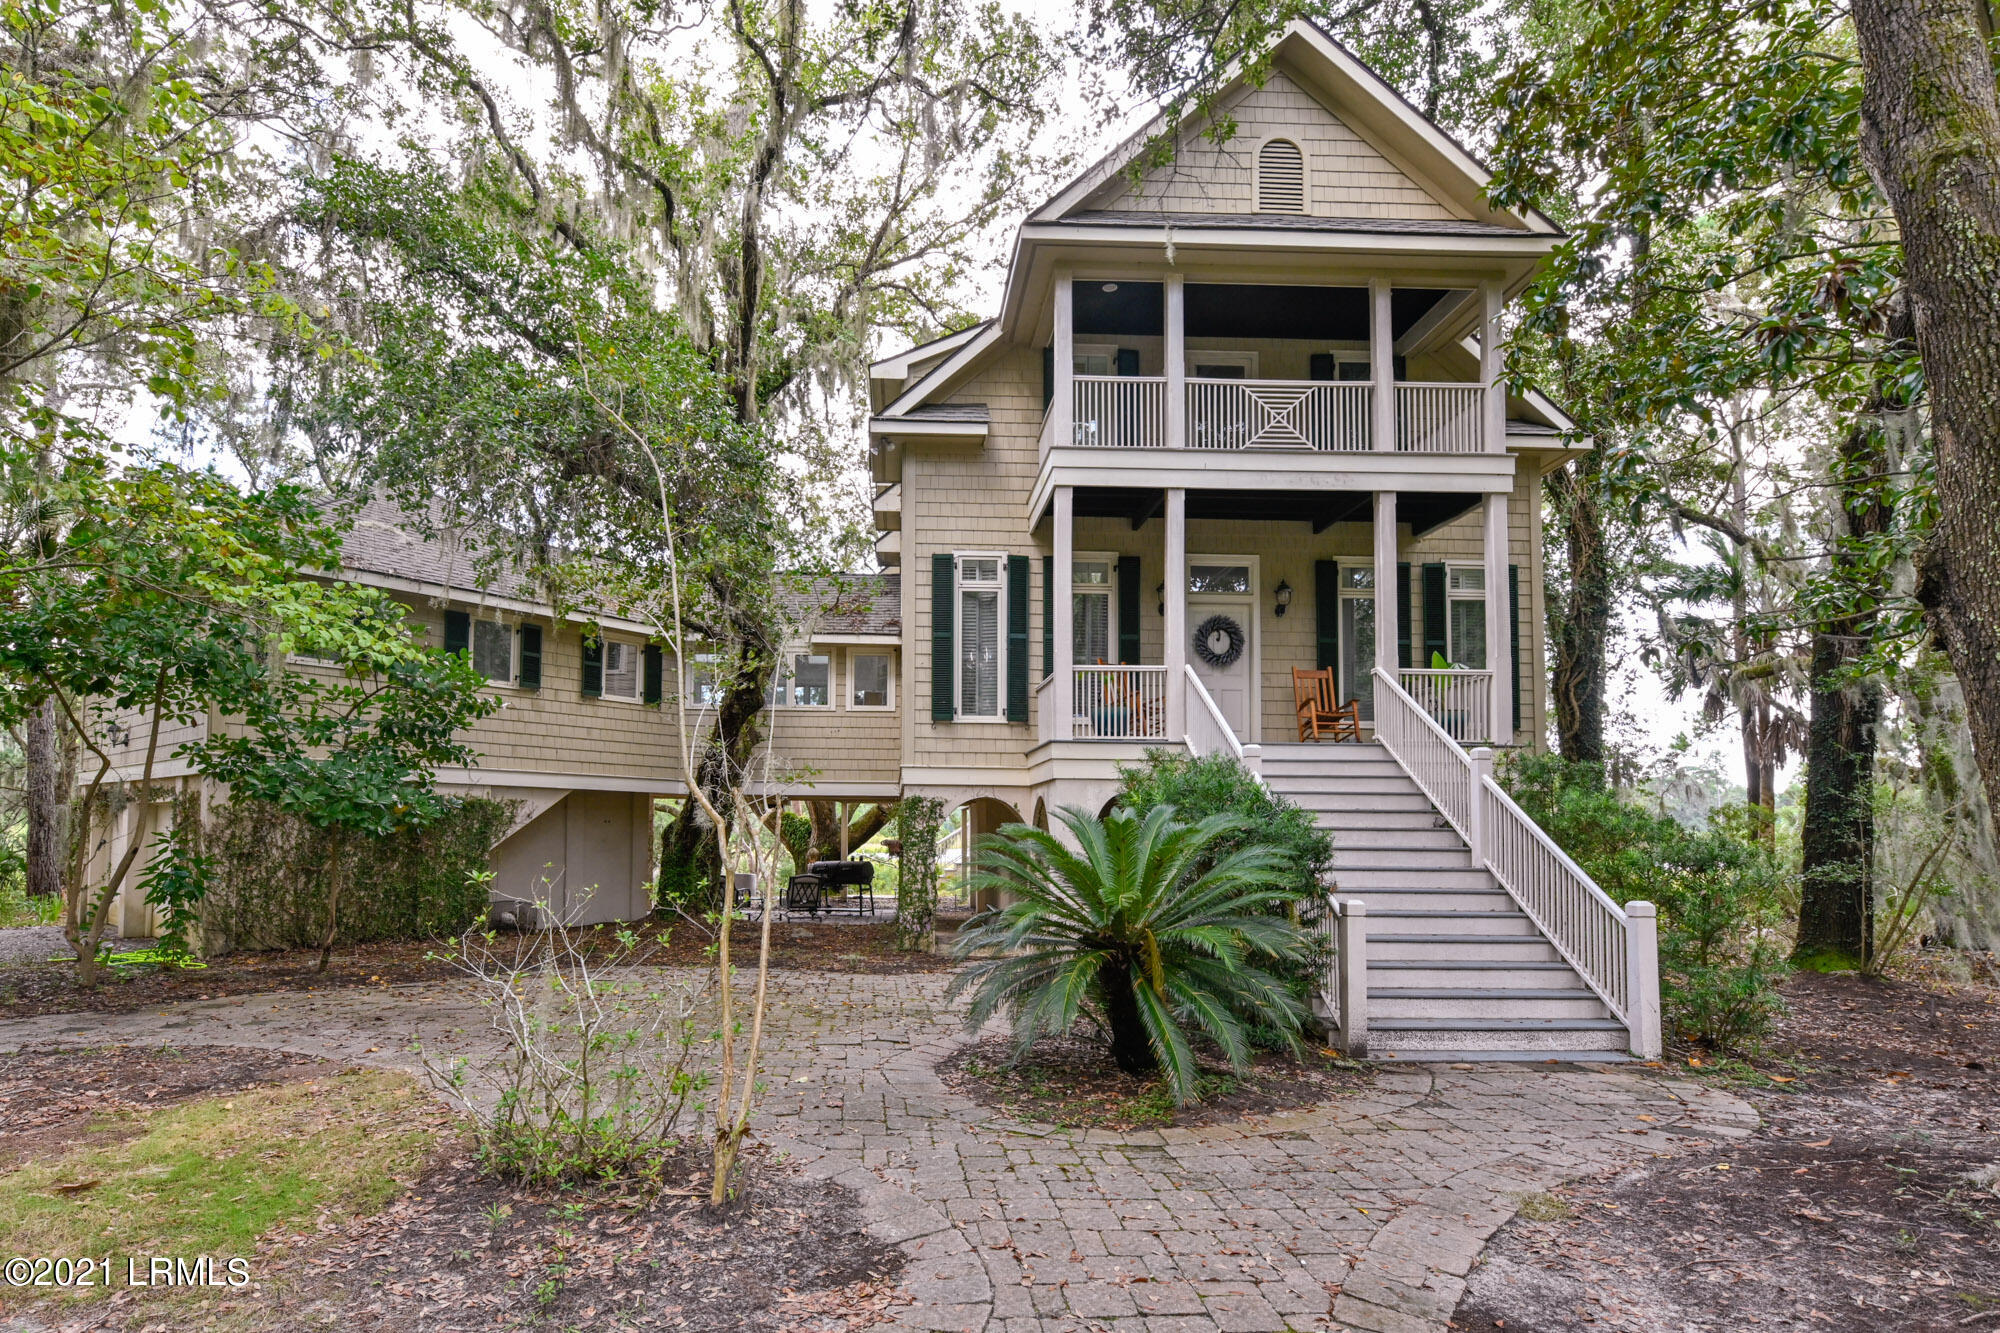 Photo of 5 Cane Way, Beaufort, SC 29907